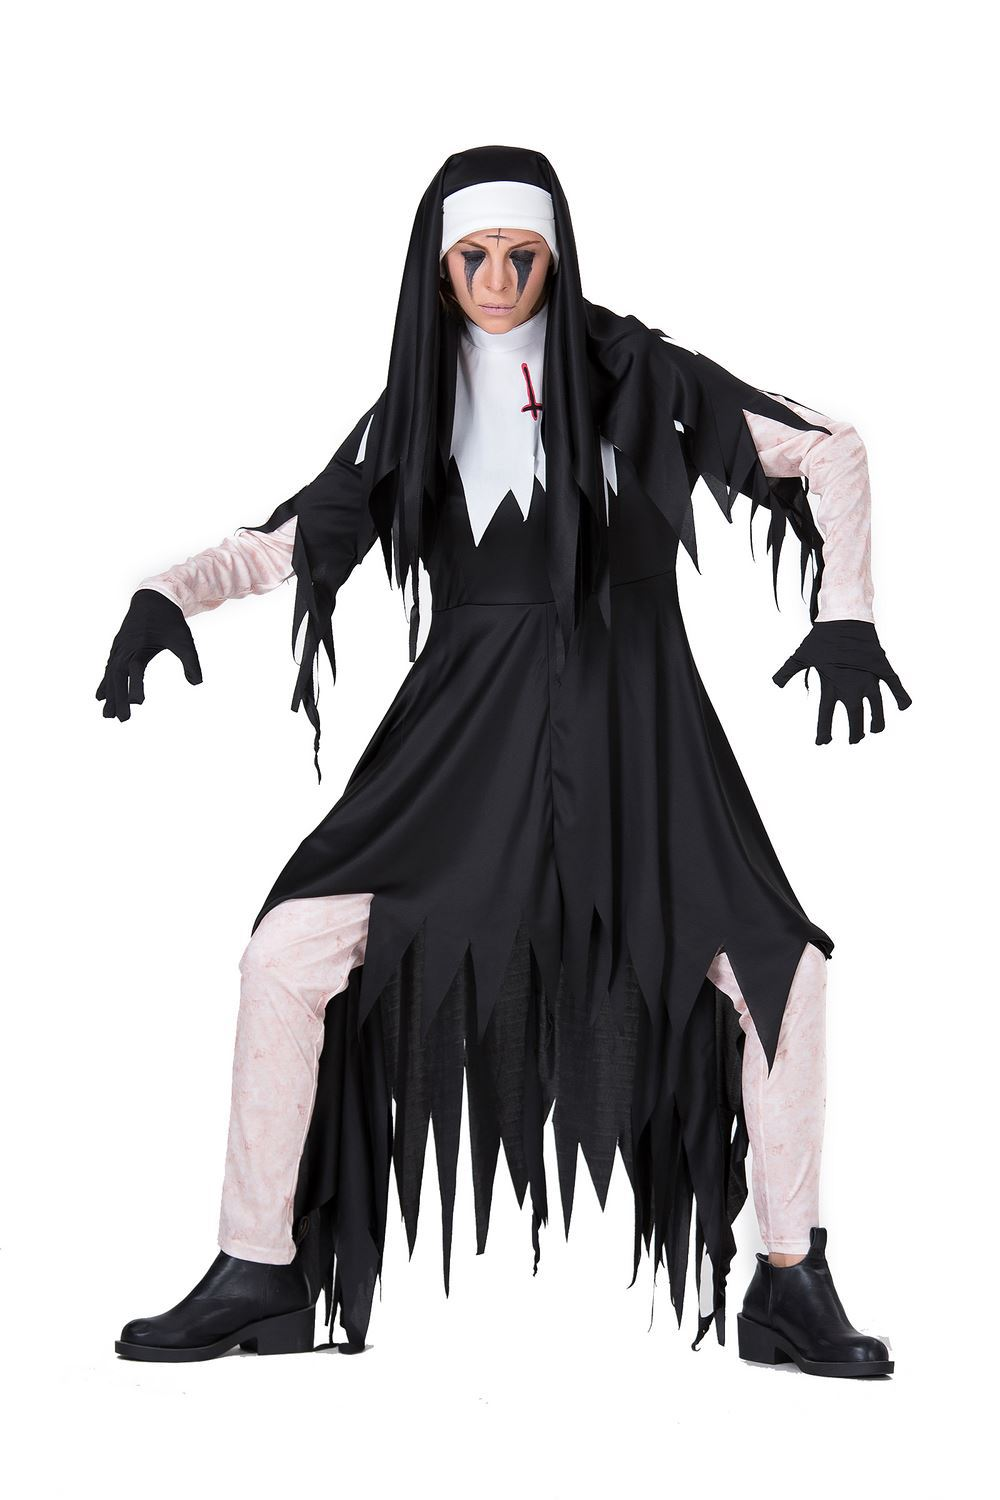 Halloween Horror Bloody Adult Nuns Priest clothes Missionary Costumes Irregular Black Long Dress Zombie